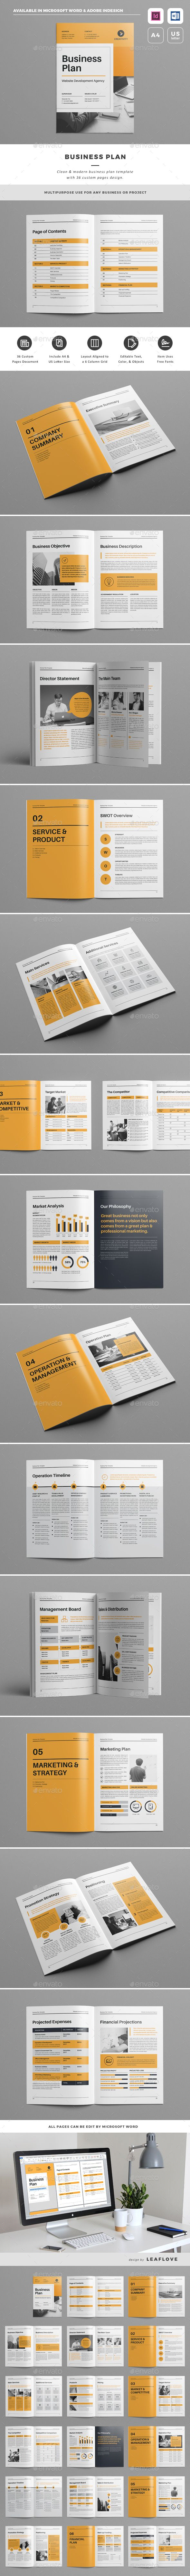 Clean & Modern Business Plan - Brochure Template InDesign INDD - 36 ...